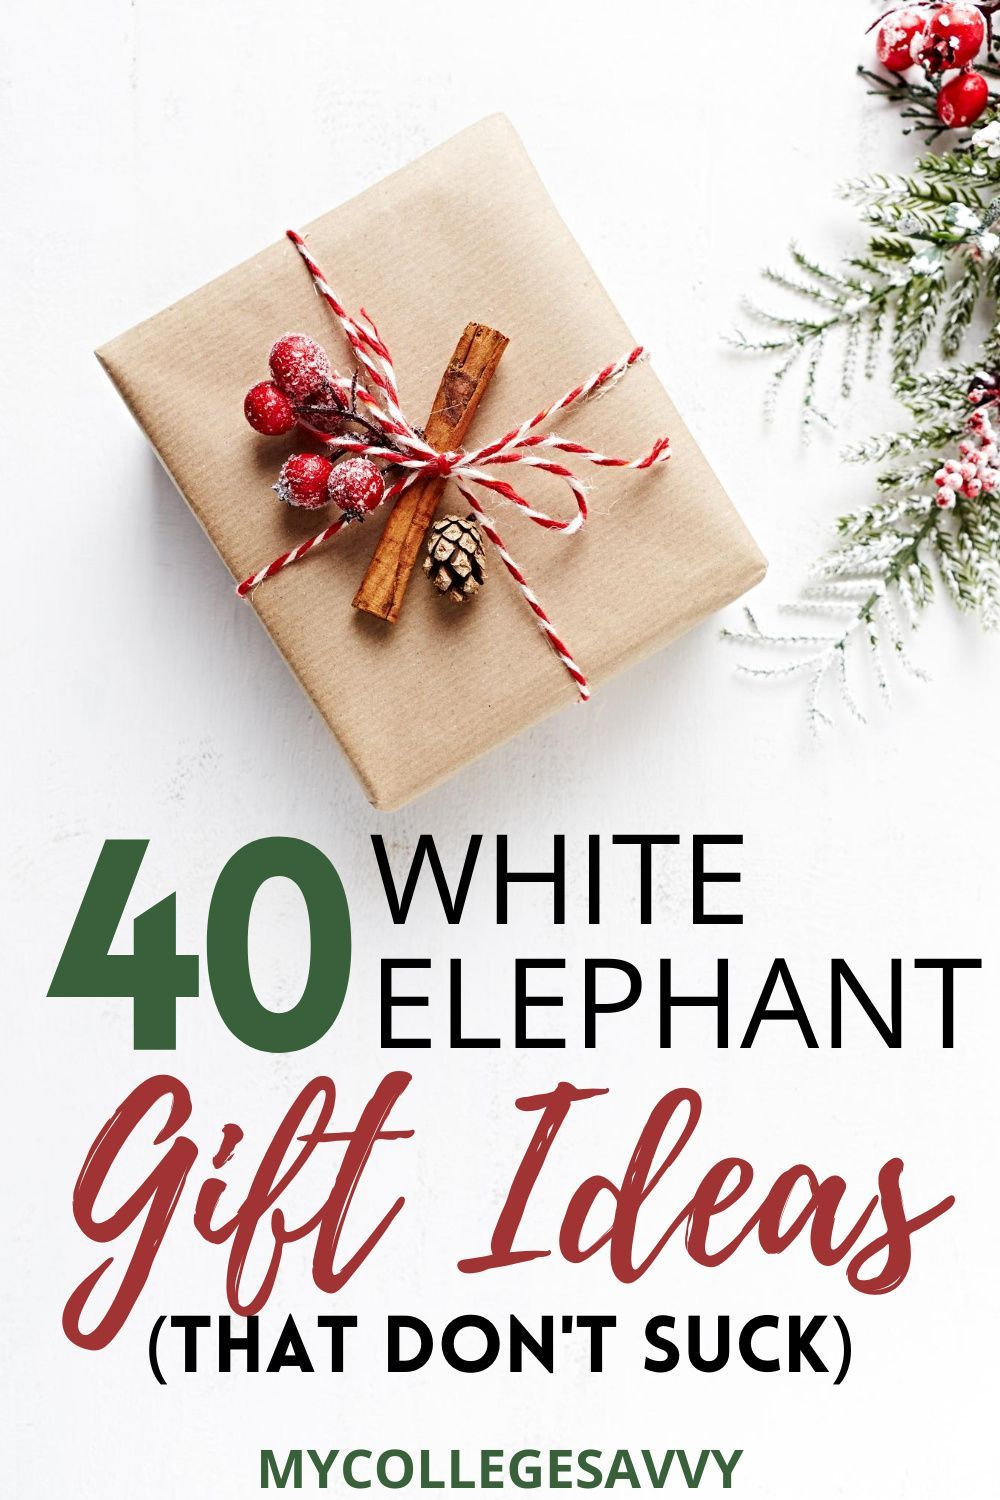 40 White Elephant Gift Ideas That Everyone Fight Over My College Savvy In 2020 White Elephant Gifts Elephant Gifts Christmas Gifts For Coworkers